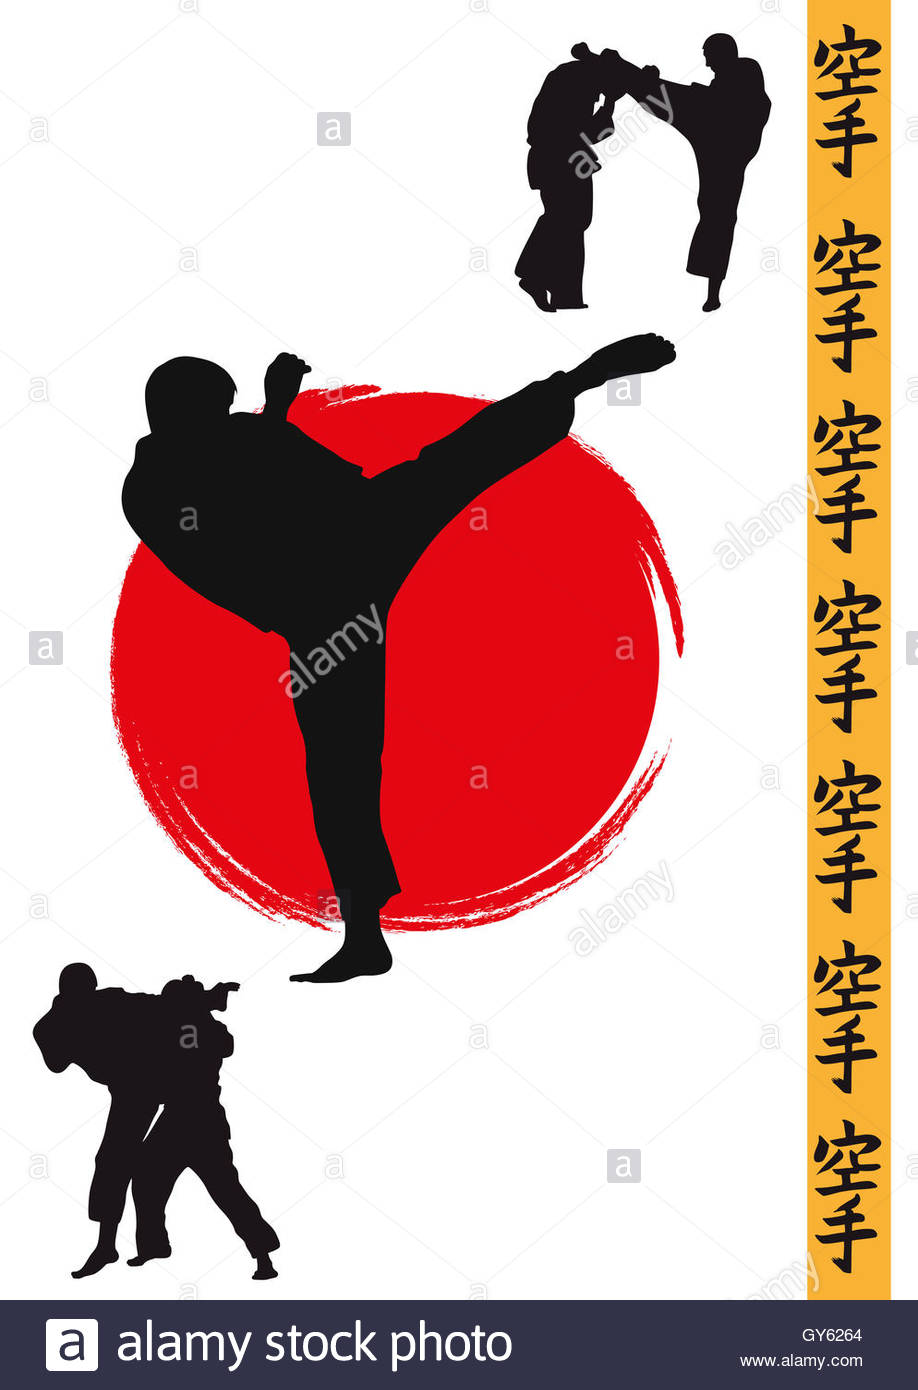 918x1390 Karate, Kick, Japanese, Sport, Background, Training, Silhouette